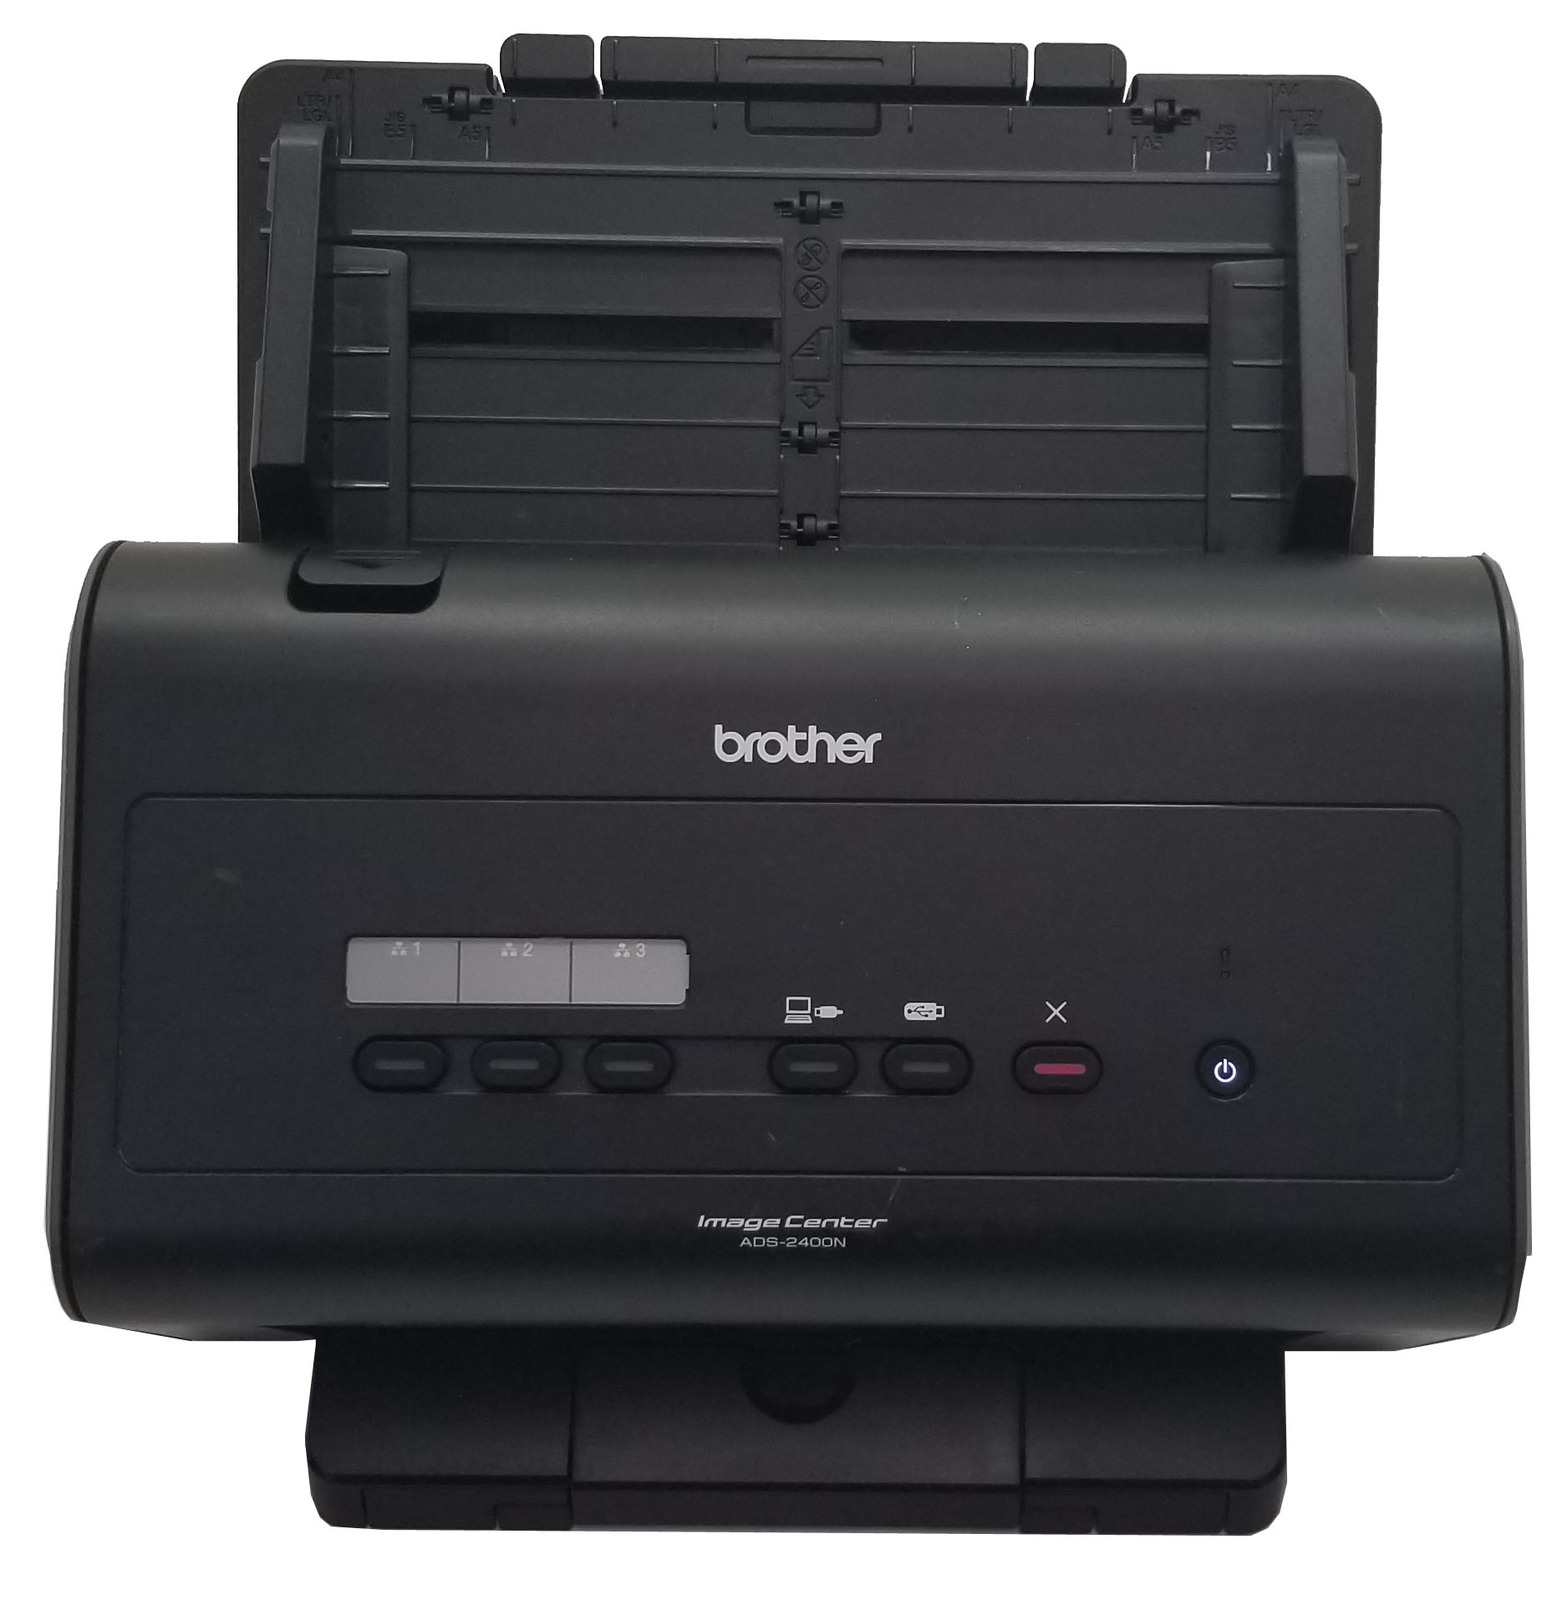 Brother ImageCenter ADS-2400N Color Duplex Scanner Bin: 2